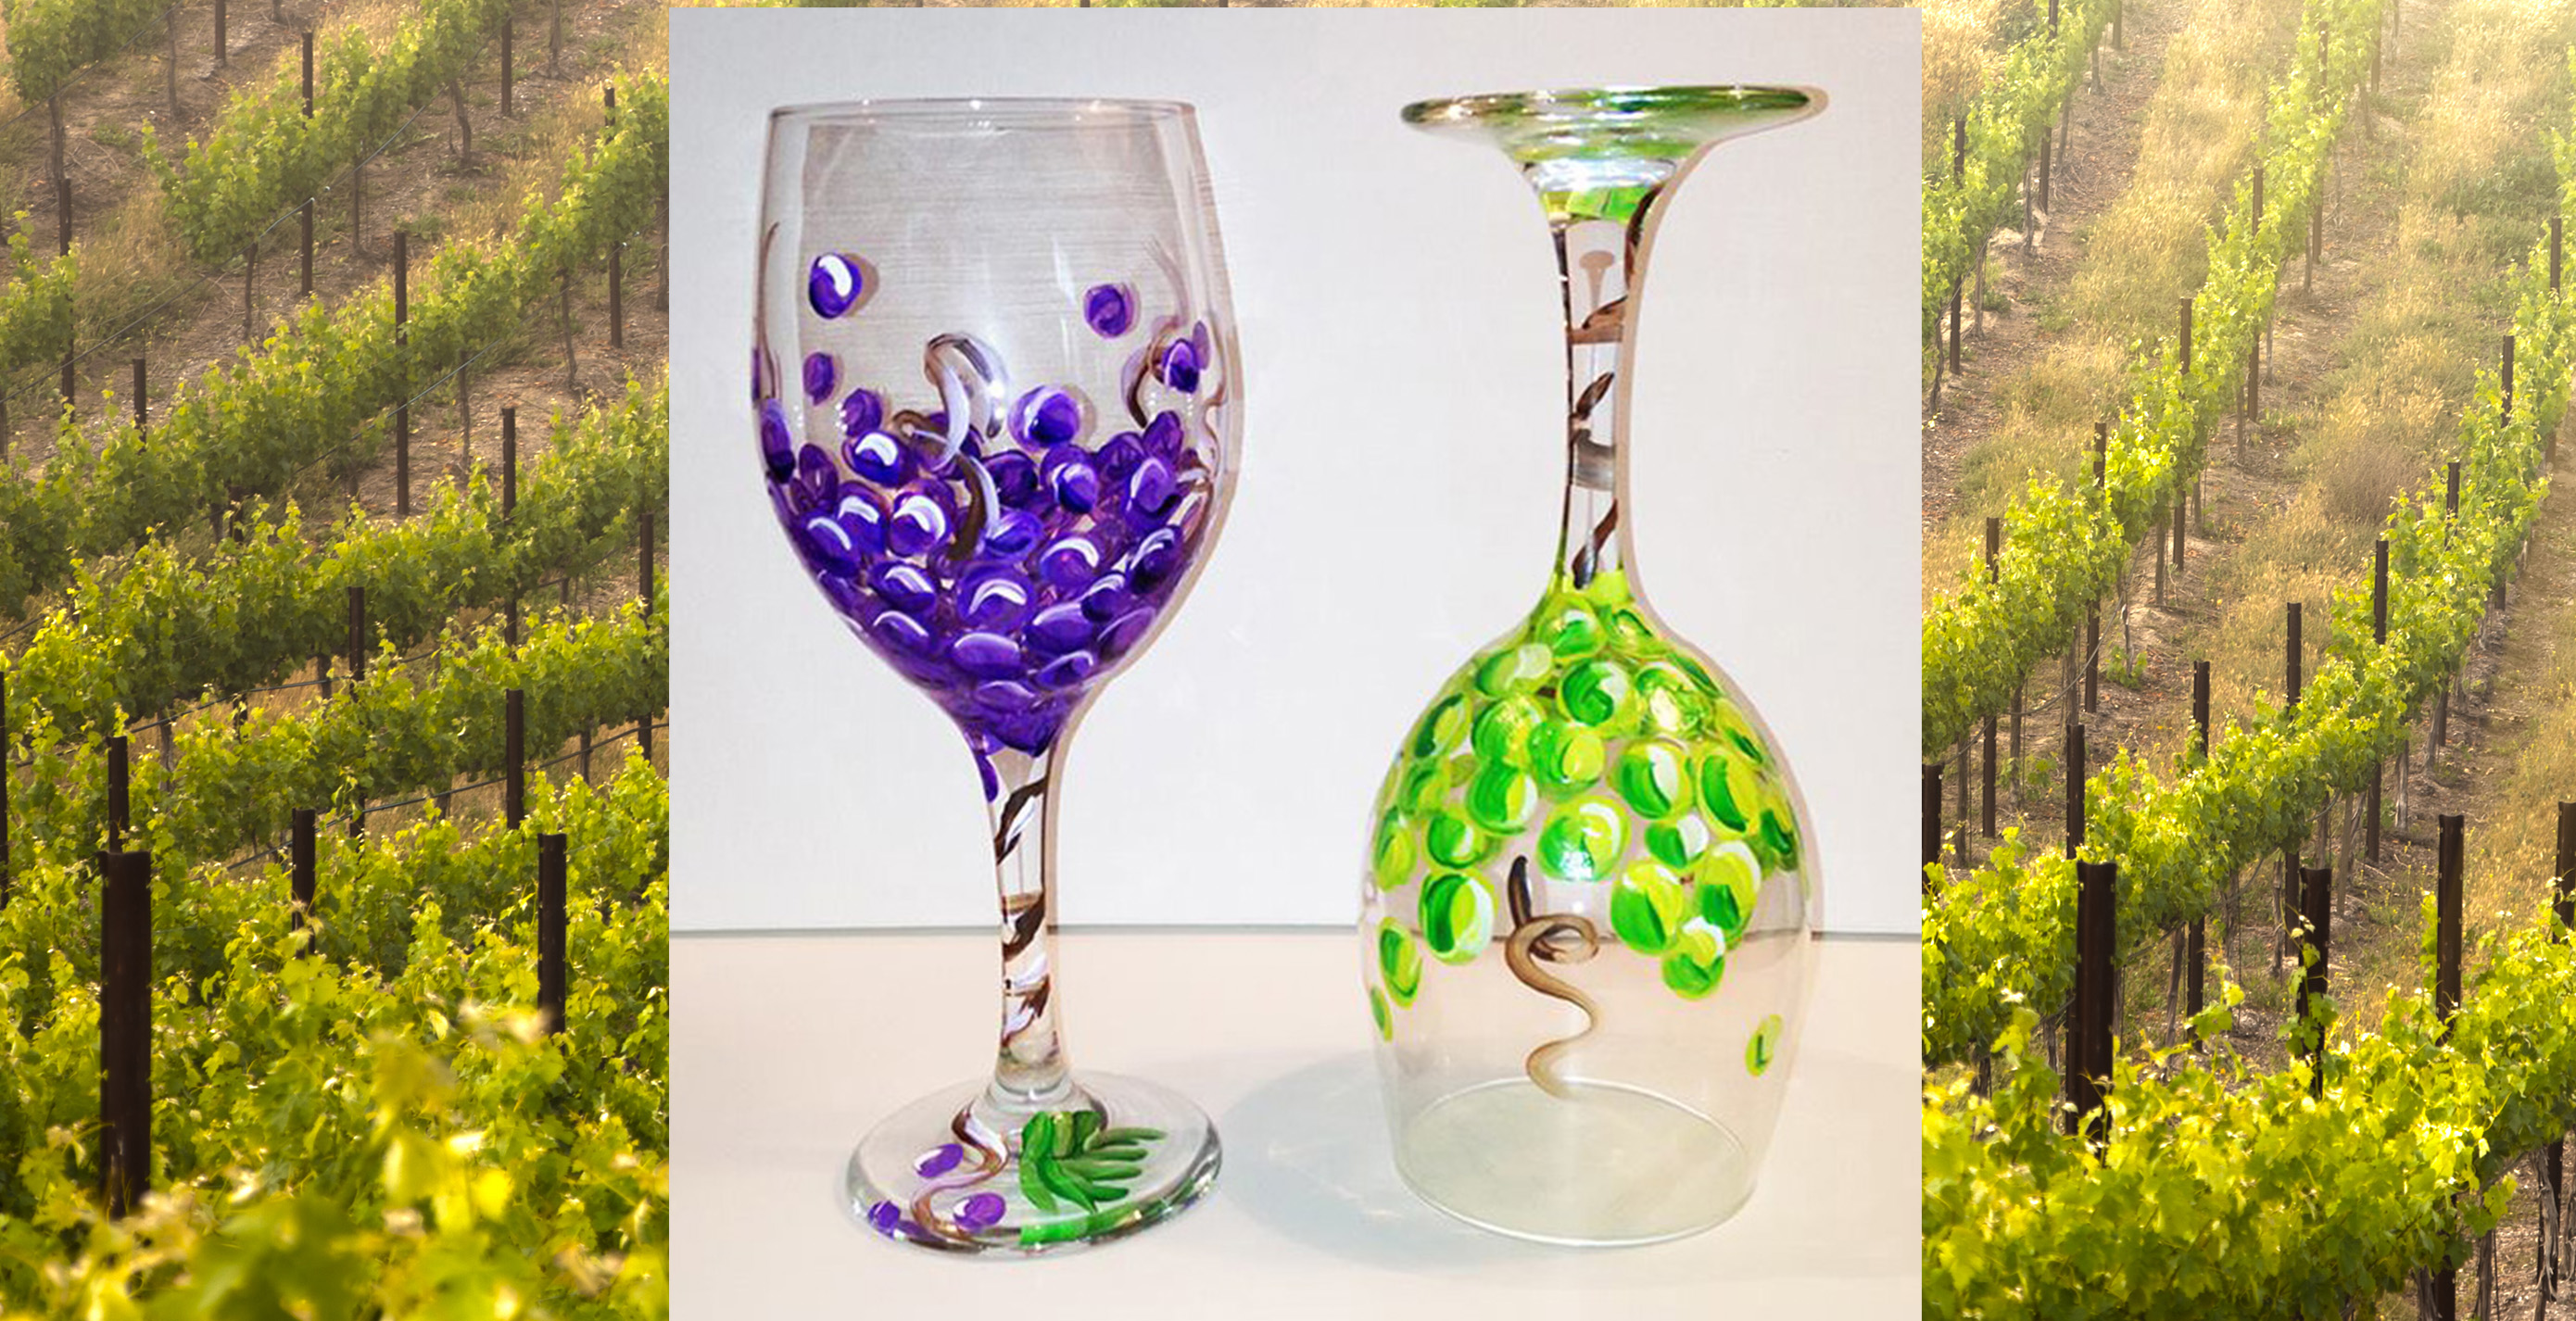 PAIR OF WINE GLASSES - MAY 6 - 6:30PM - REGENCY WINE BAR